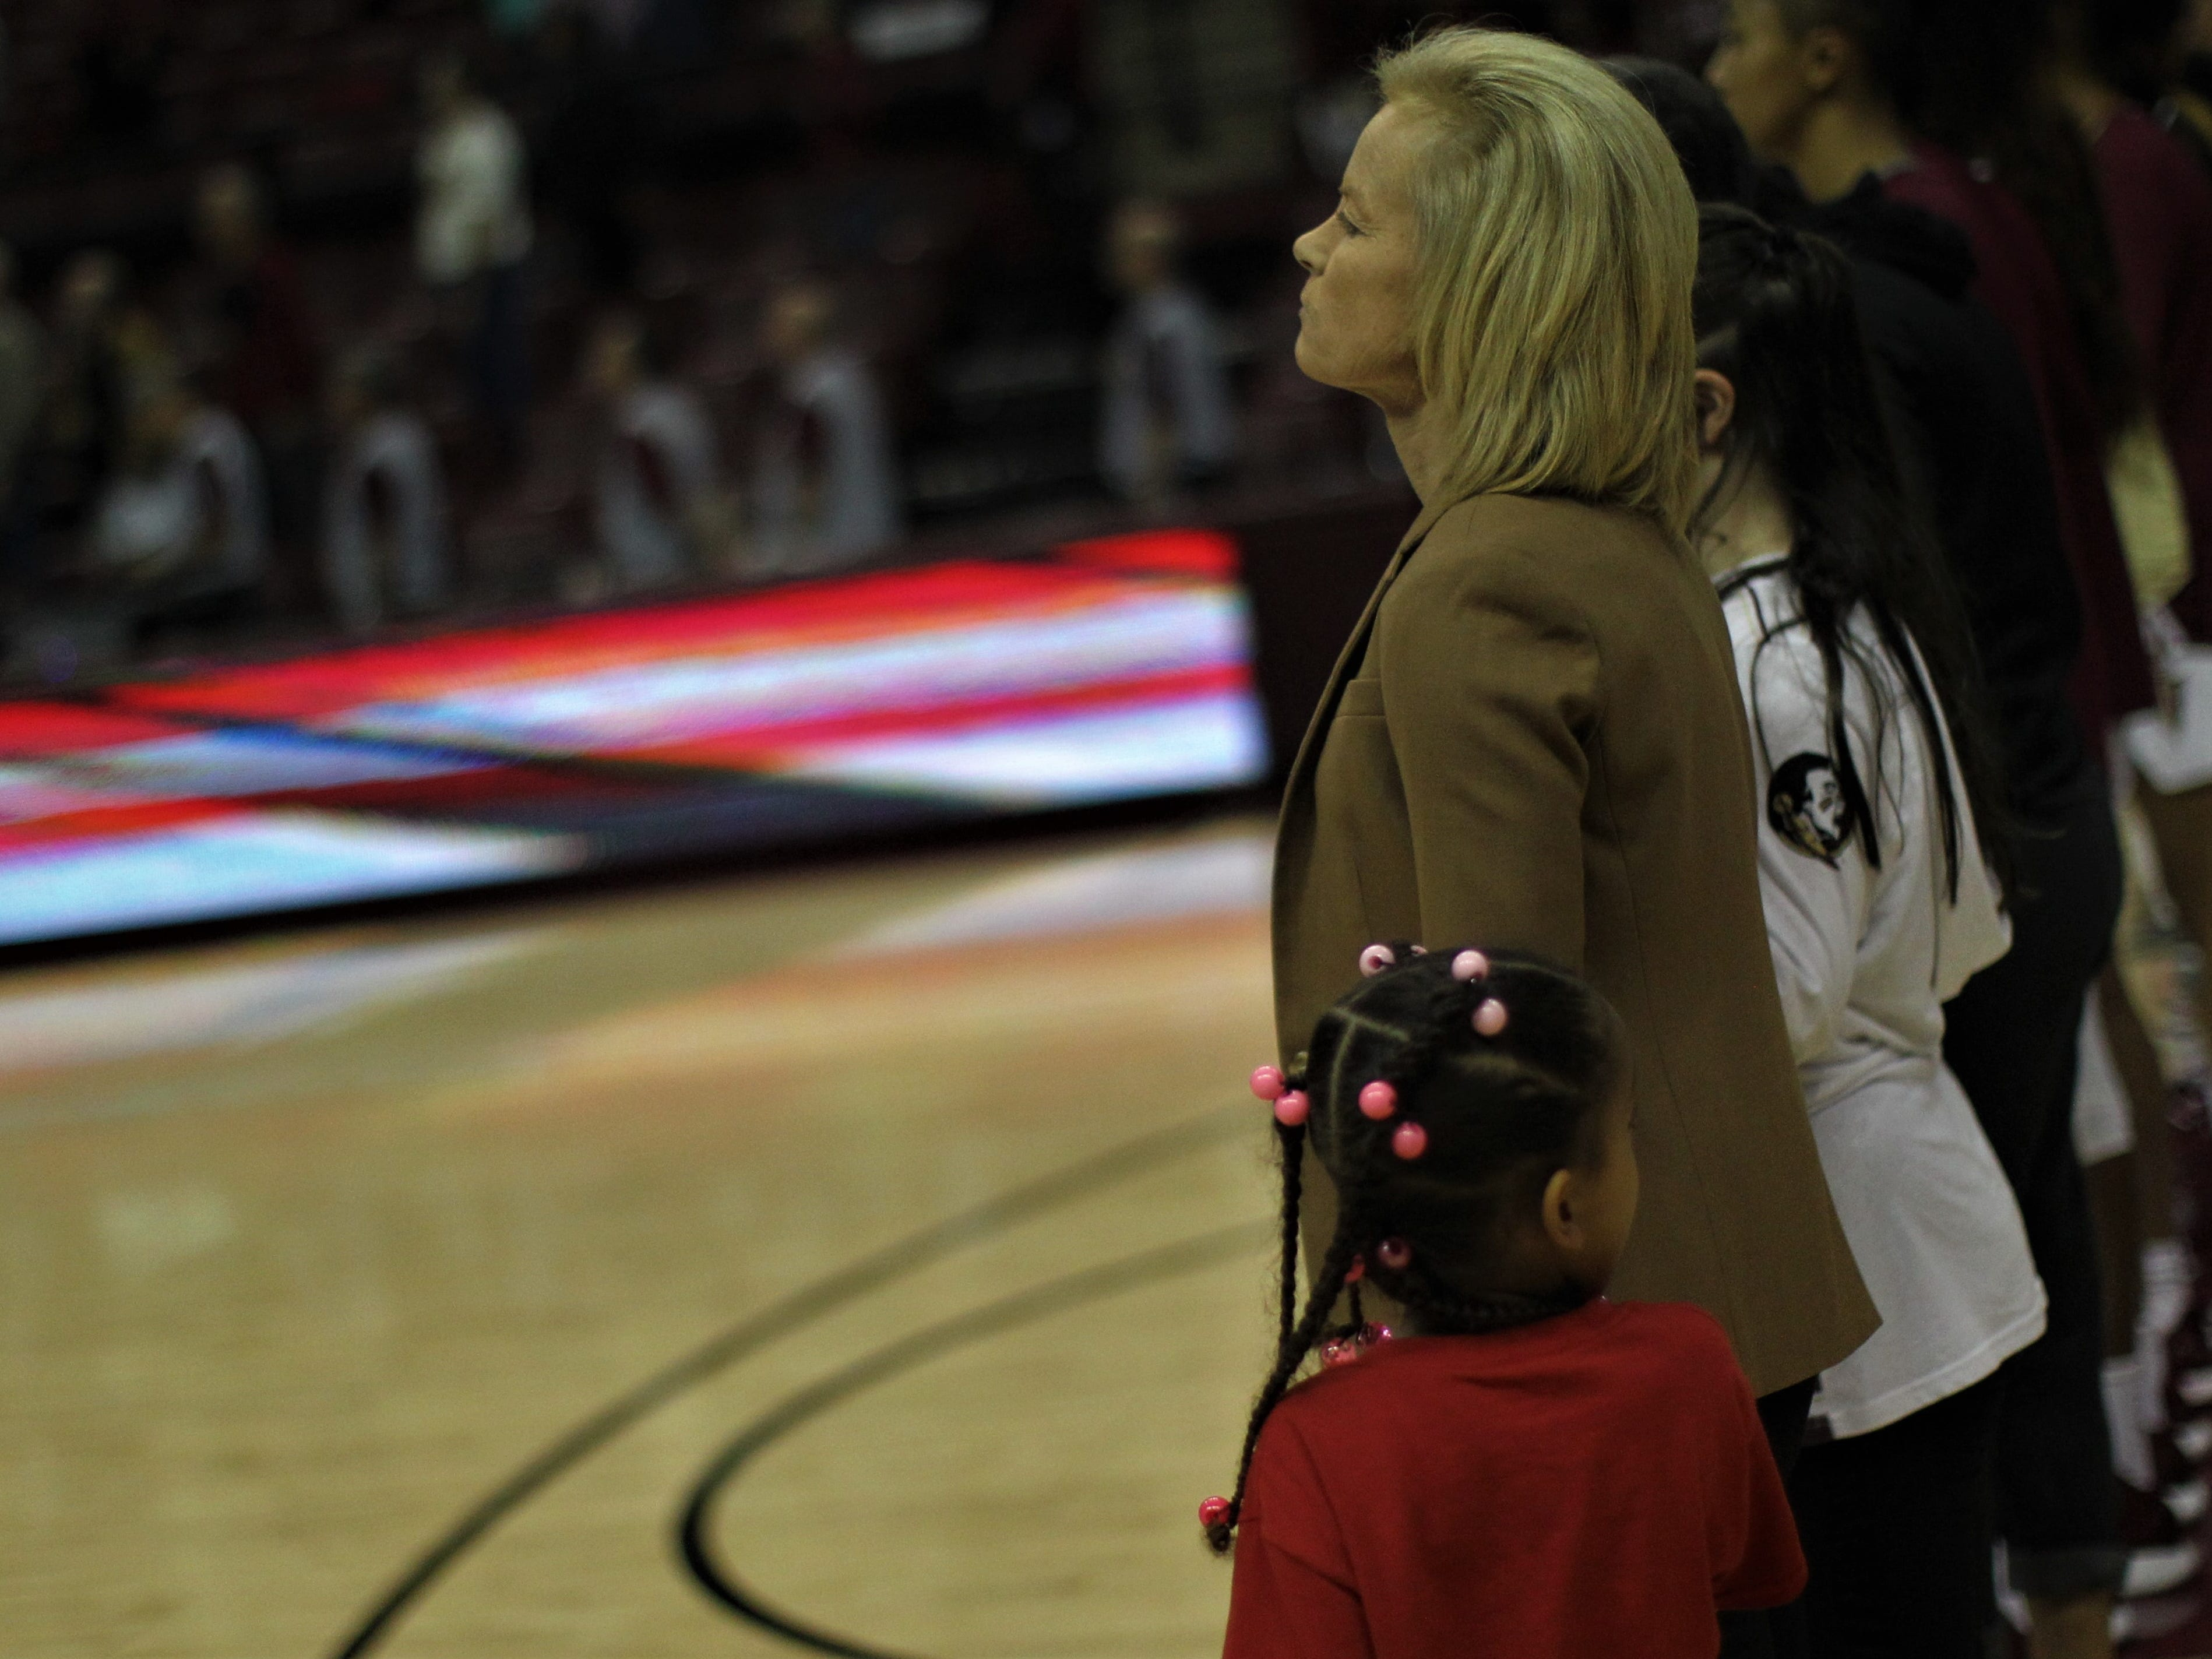 Florida State women's basketball coach Sue Semrau stands at attention during the national anthem, prior to the Seminoles' game against Florida at the Tucker Civic Center on Nov. 11, 2018.